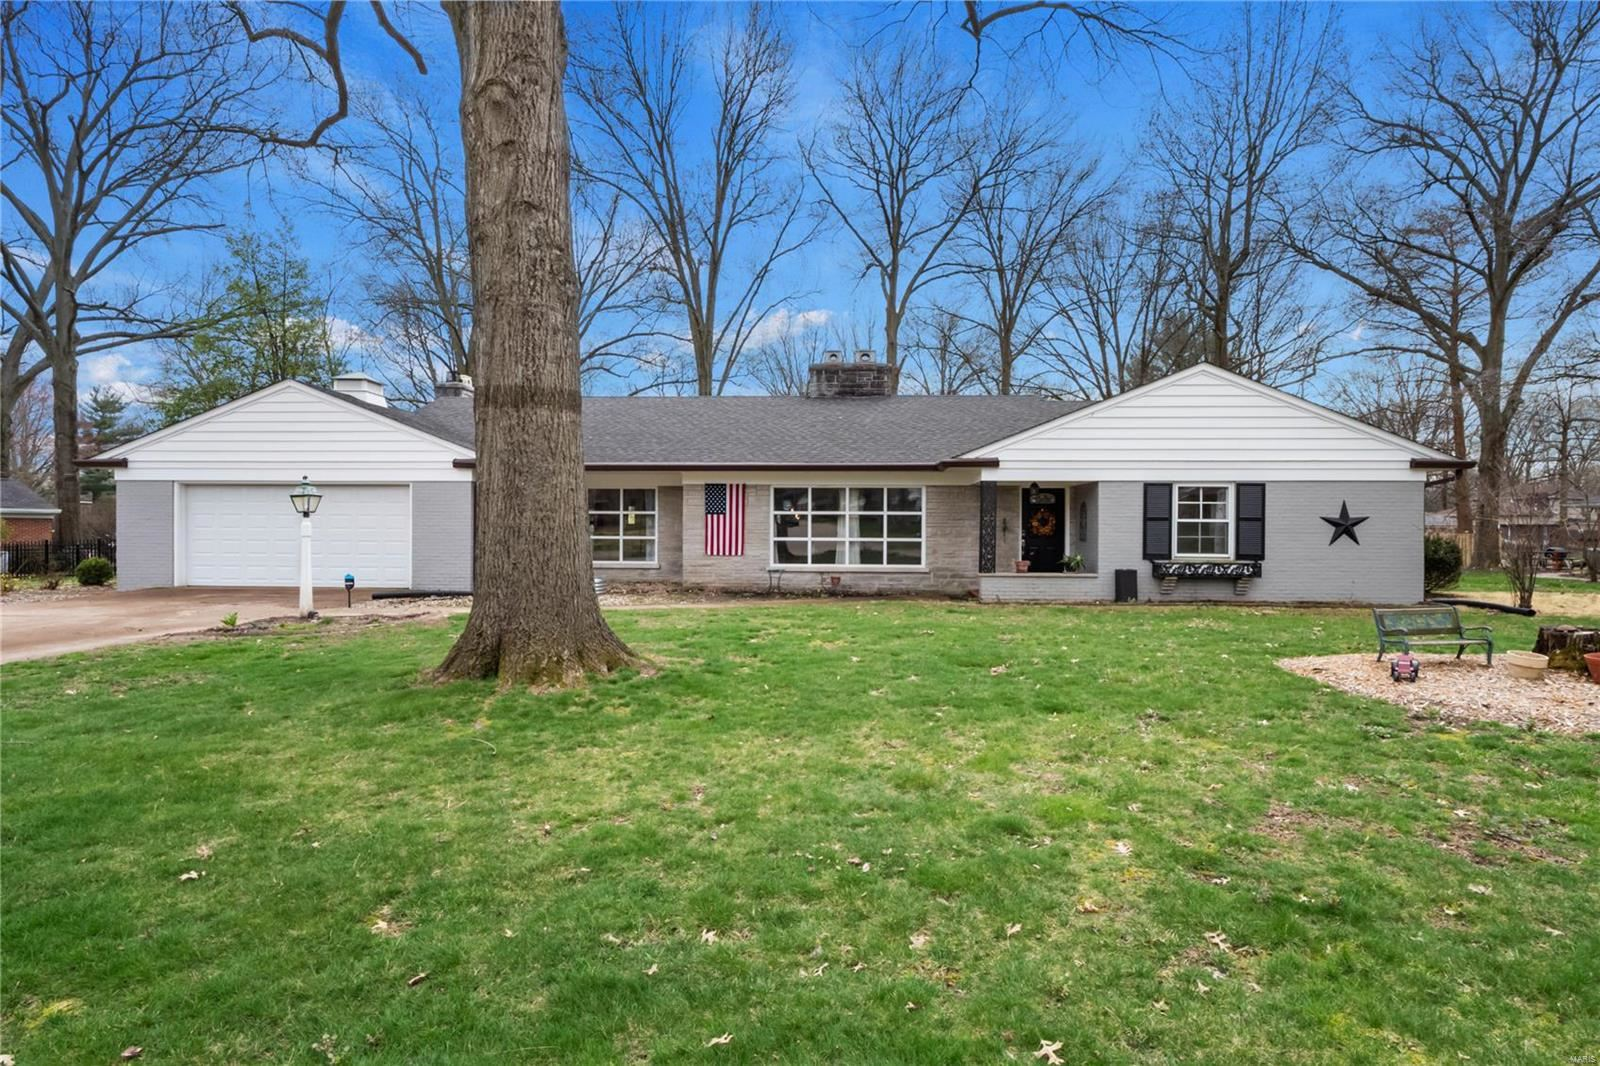 32 SHADY Lane, Belleville, IL 62221 - MLS#: 20018536